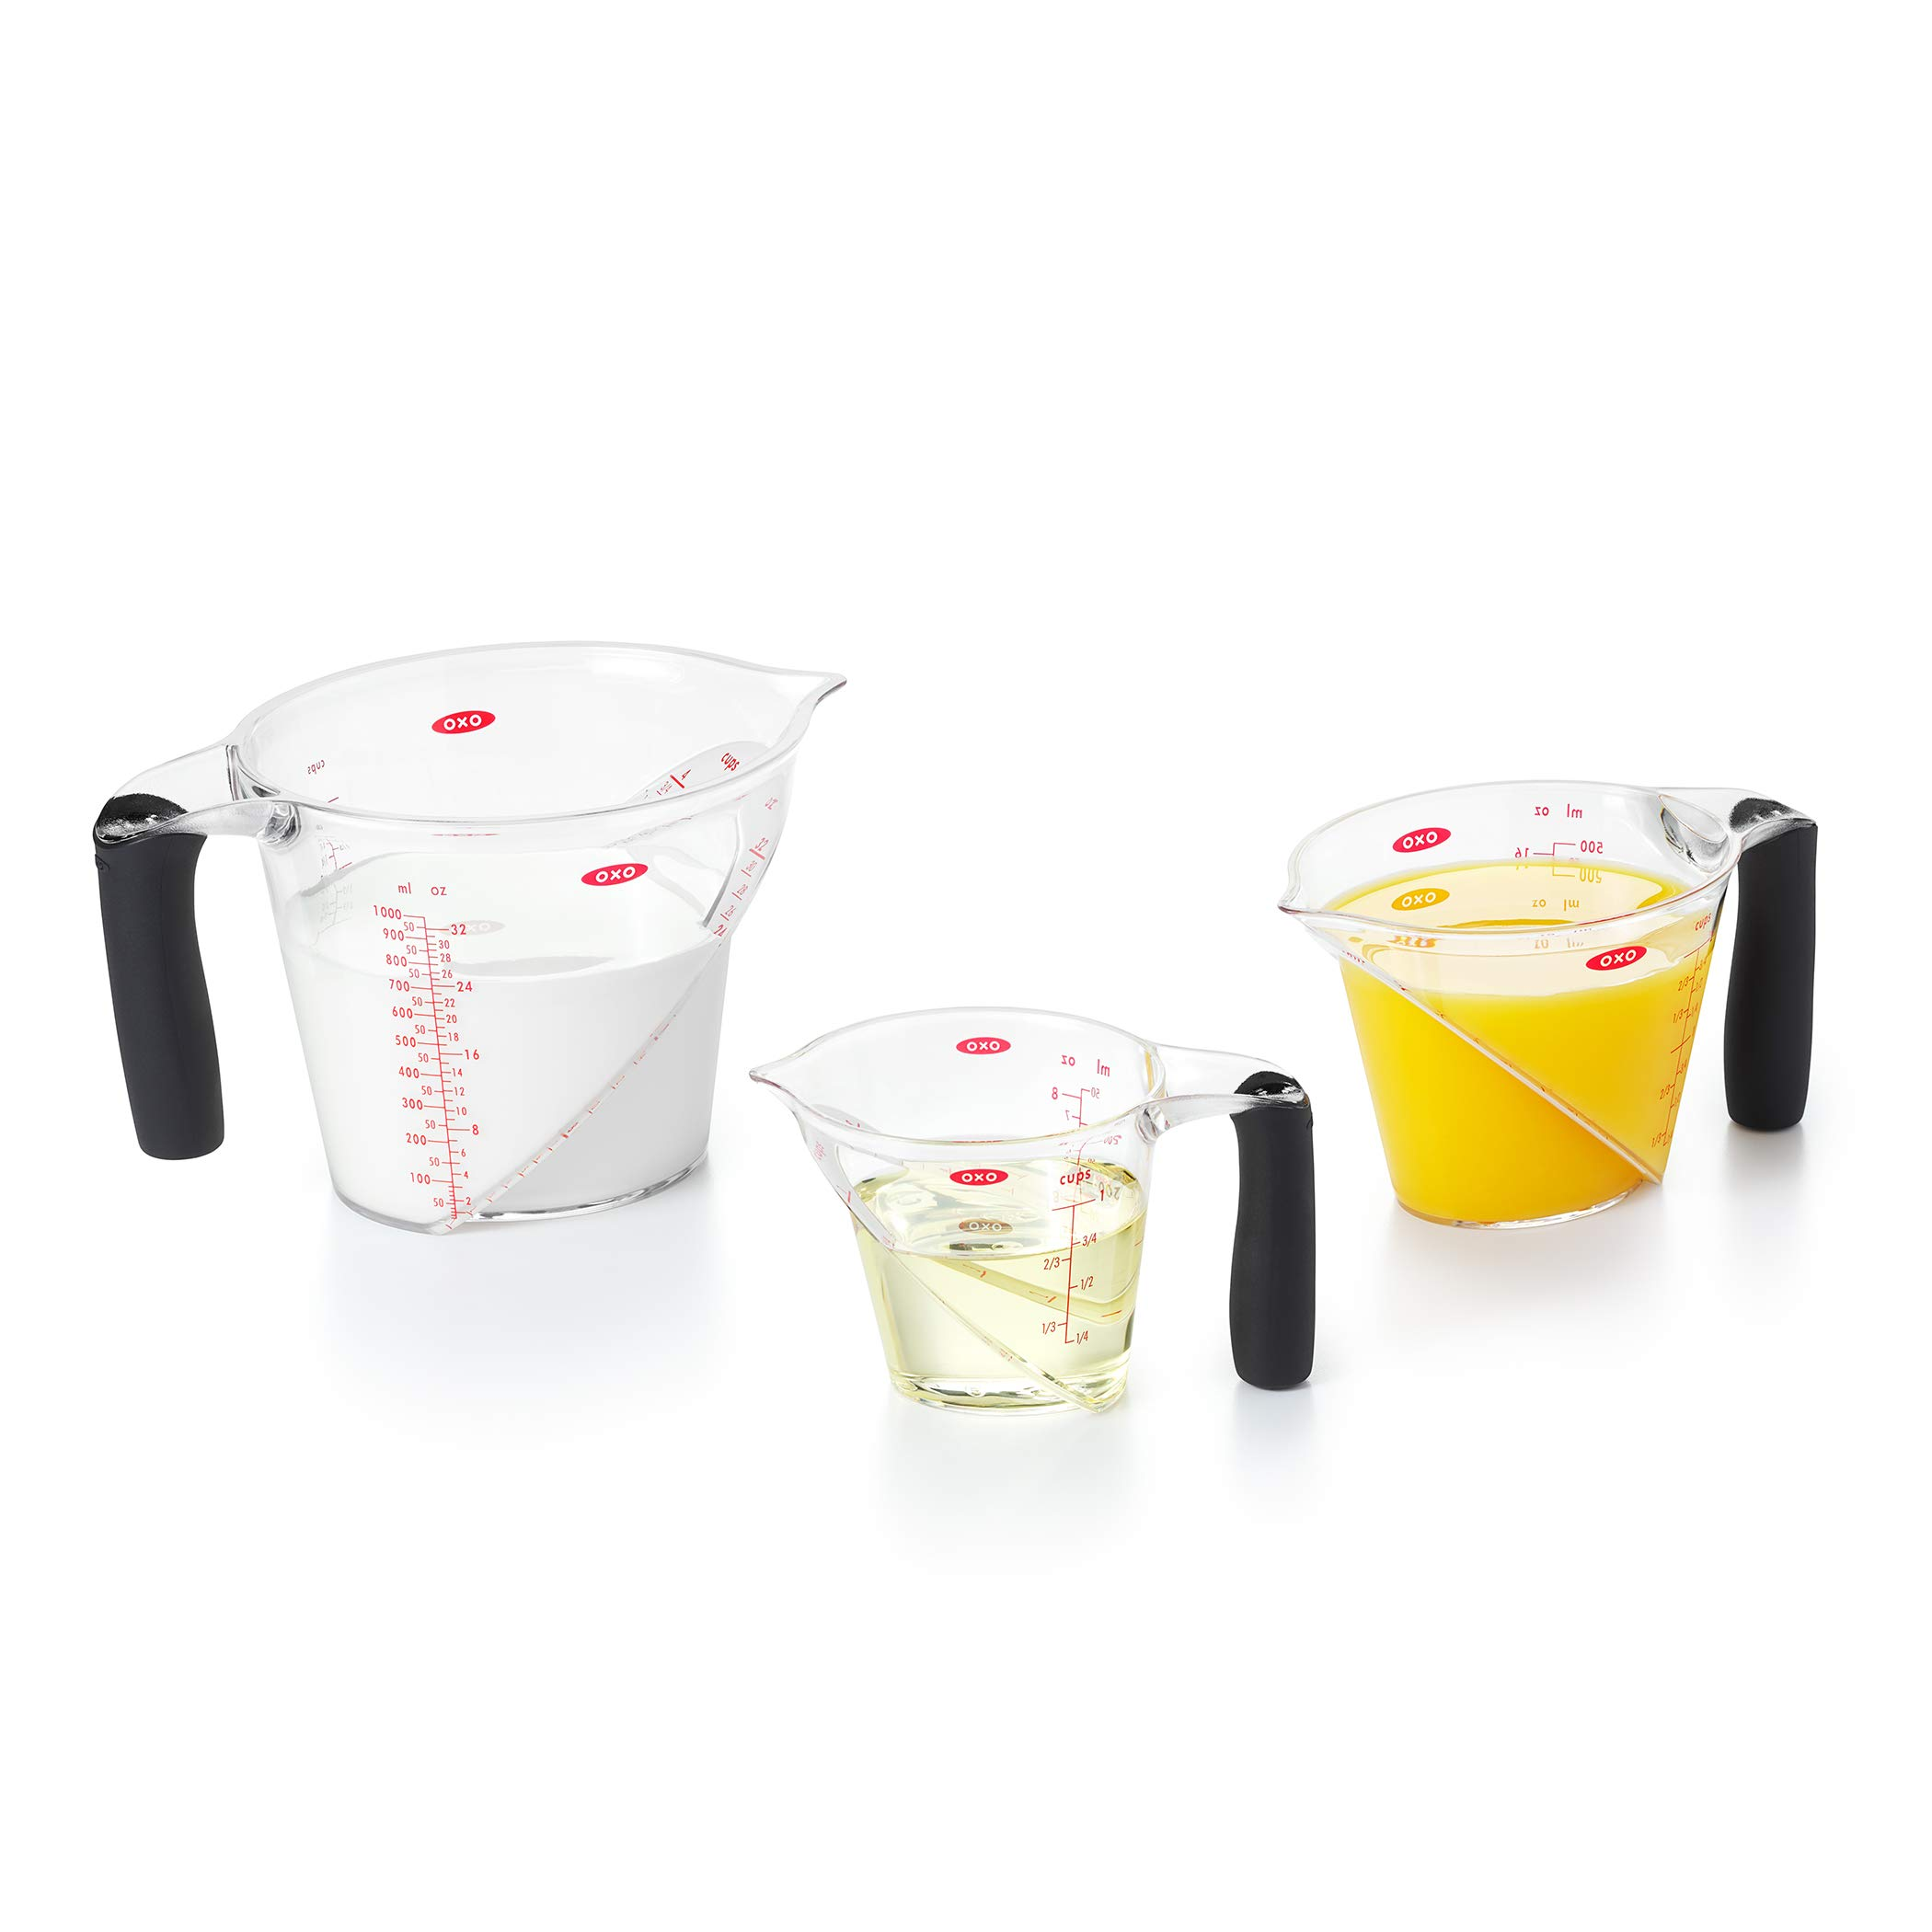 OXO 1056988 Good Grips 3-Piece Angled Measuring Cup Set, BLACK by OXO